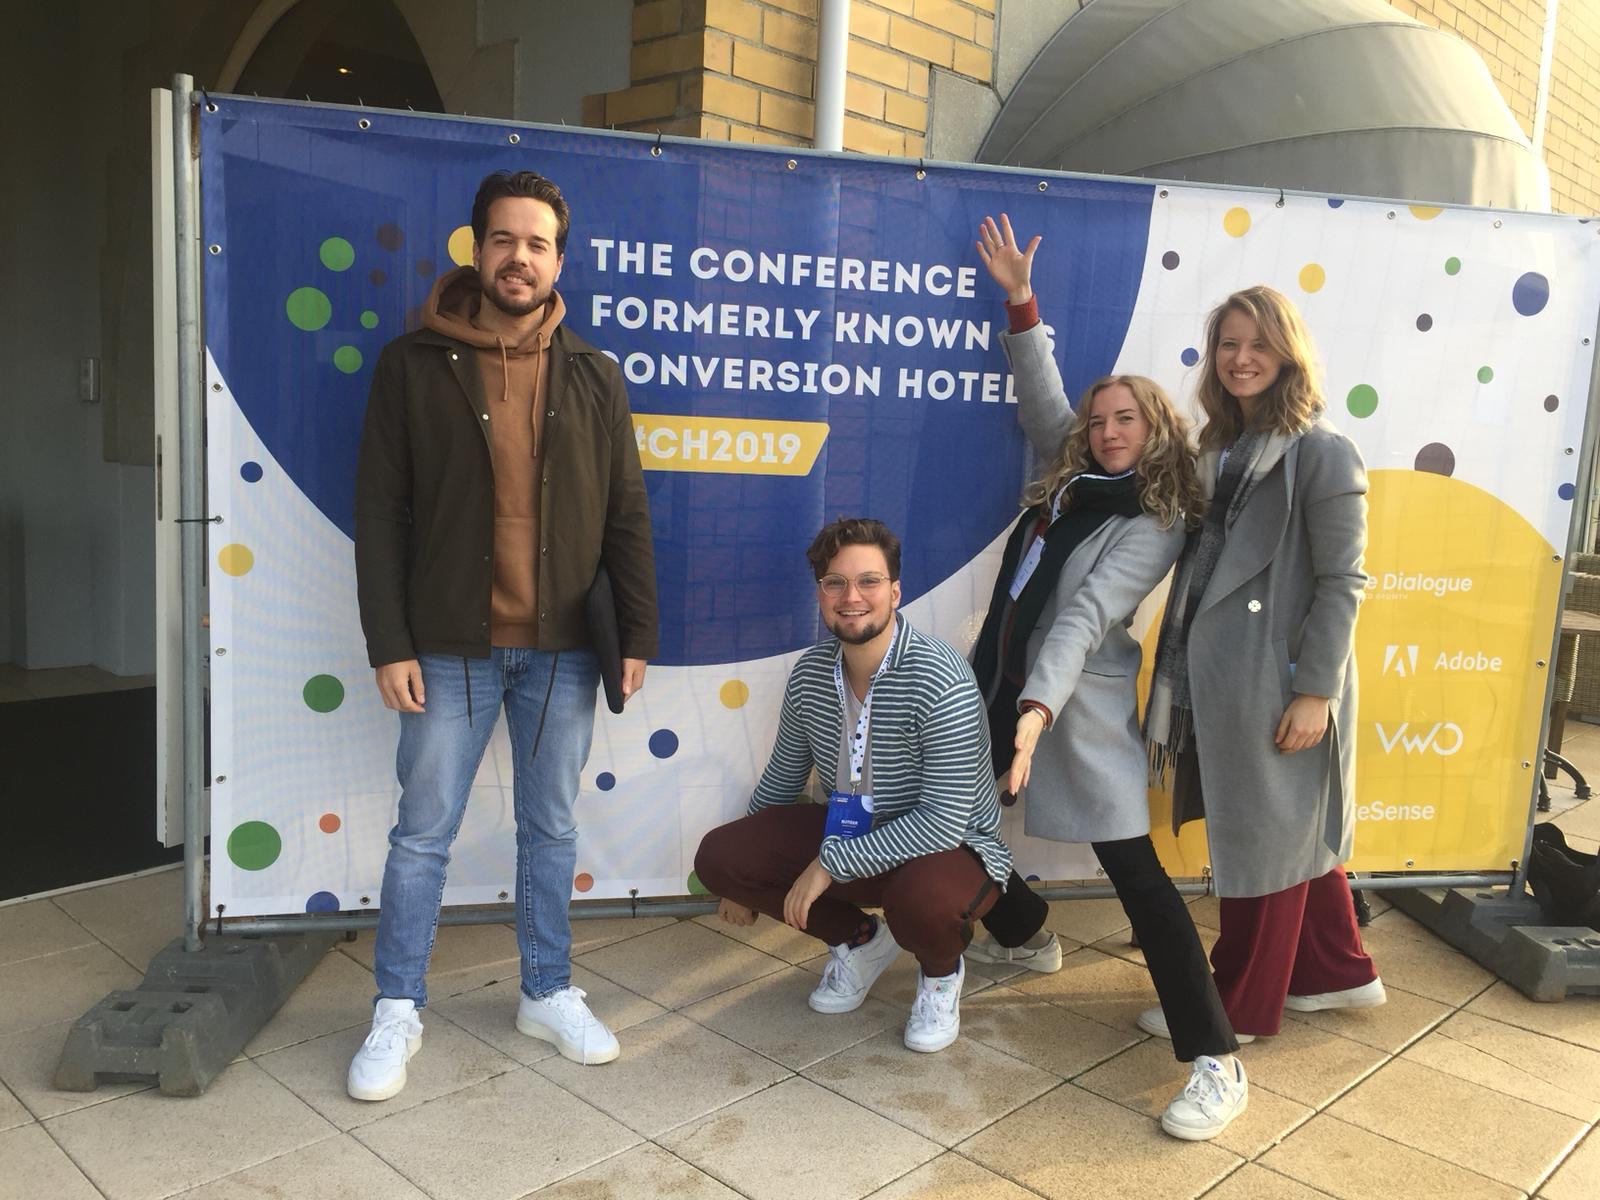 RockBoost members at the Conversion Hotel Conference in 2019